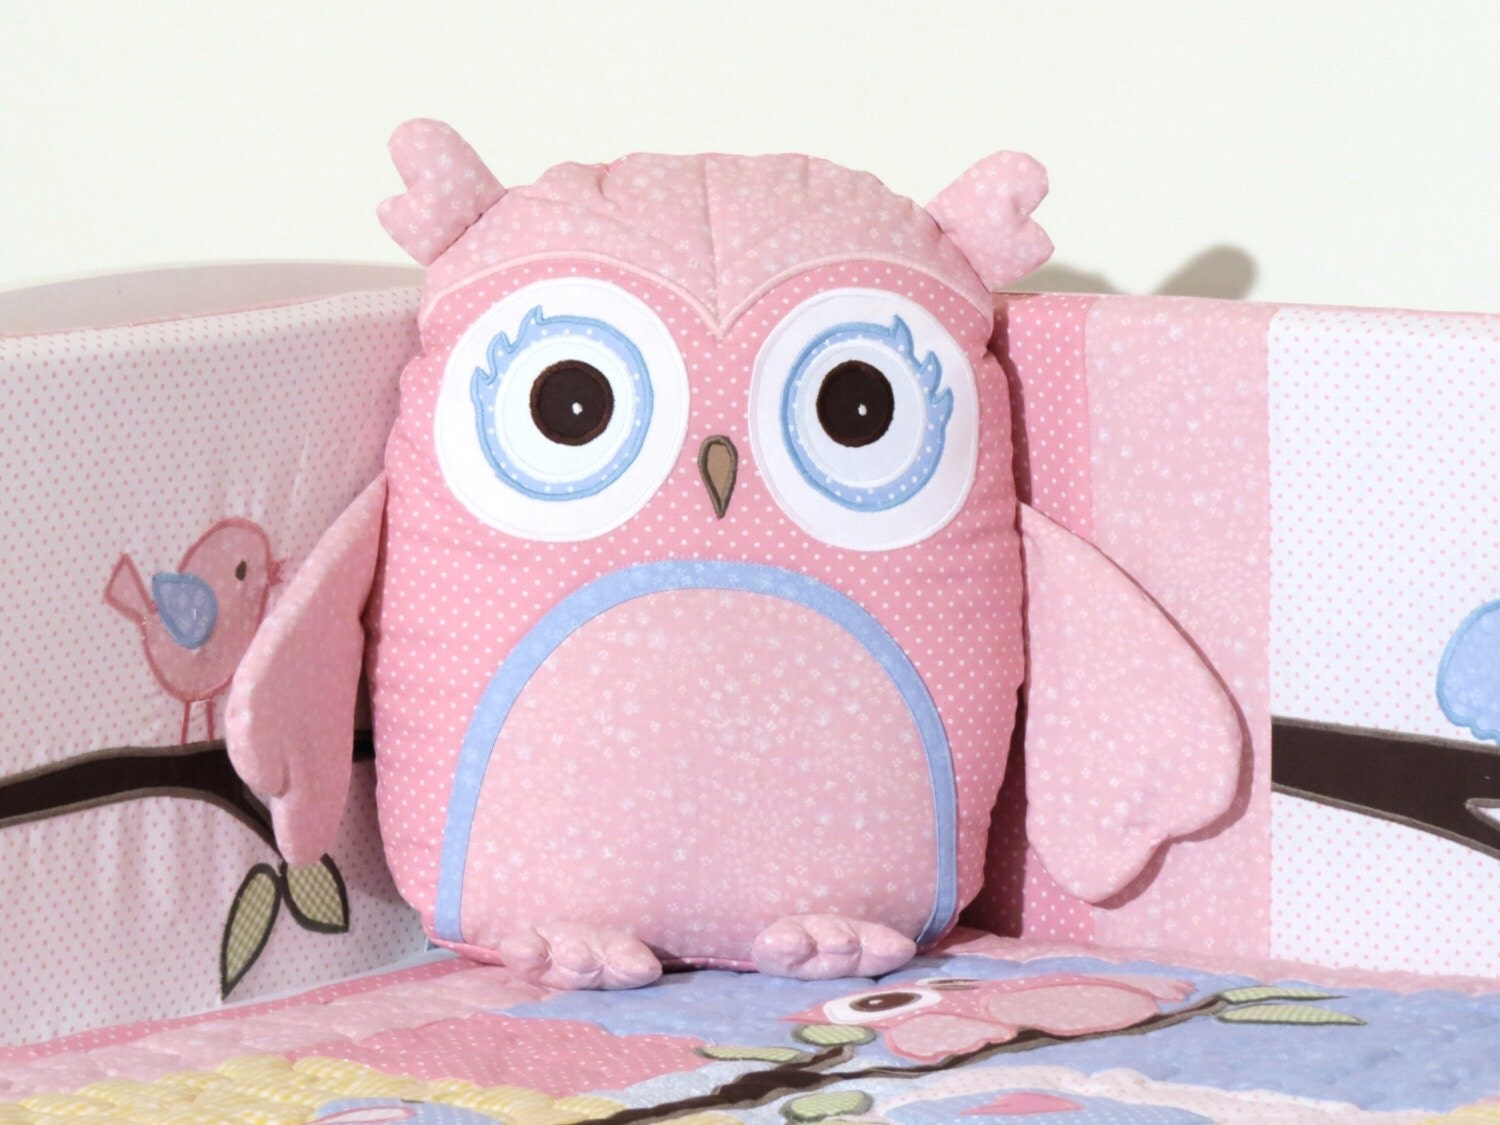 Stuff Owl Pink Owl Pillow Baby Toys Stuffed Owl Shower Gift Present